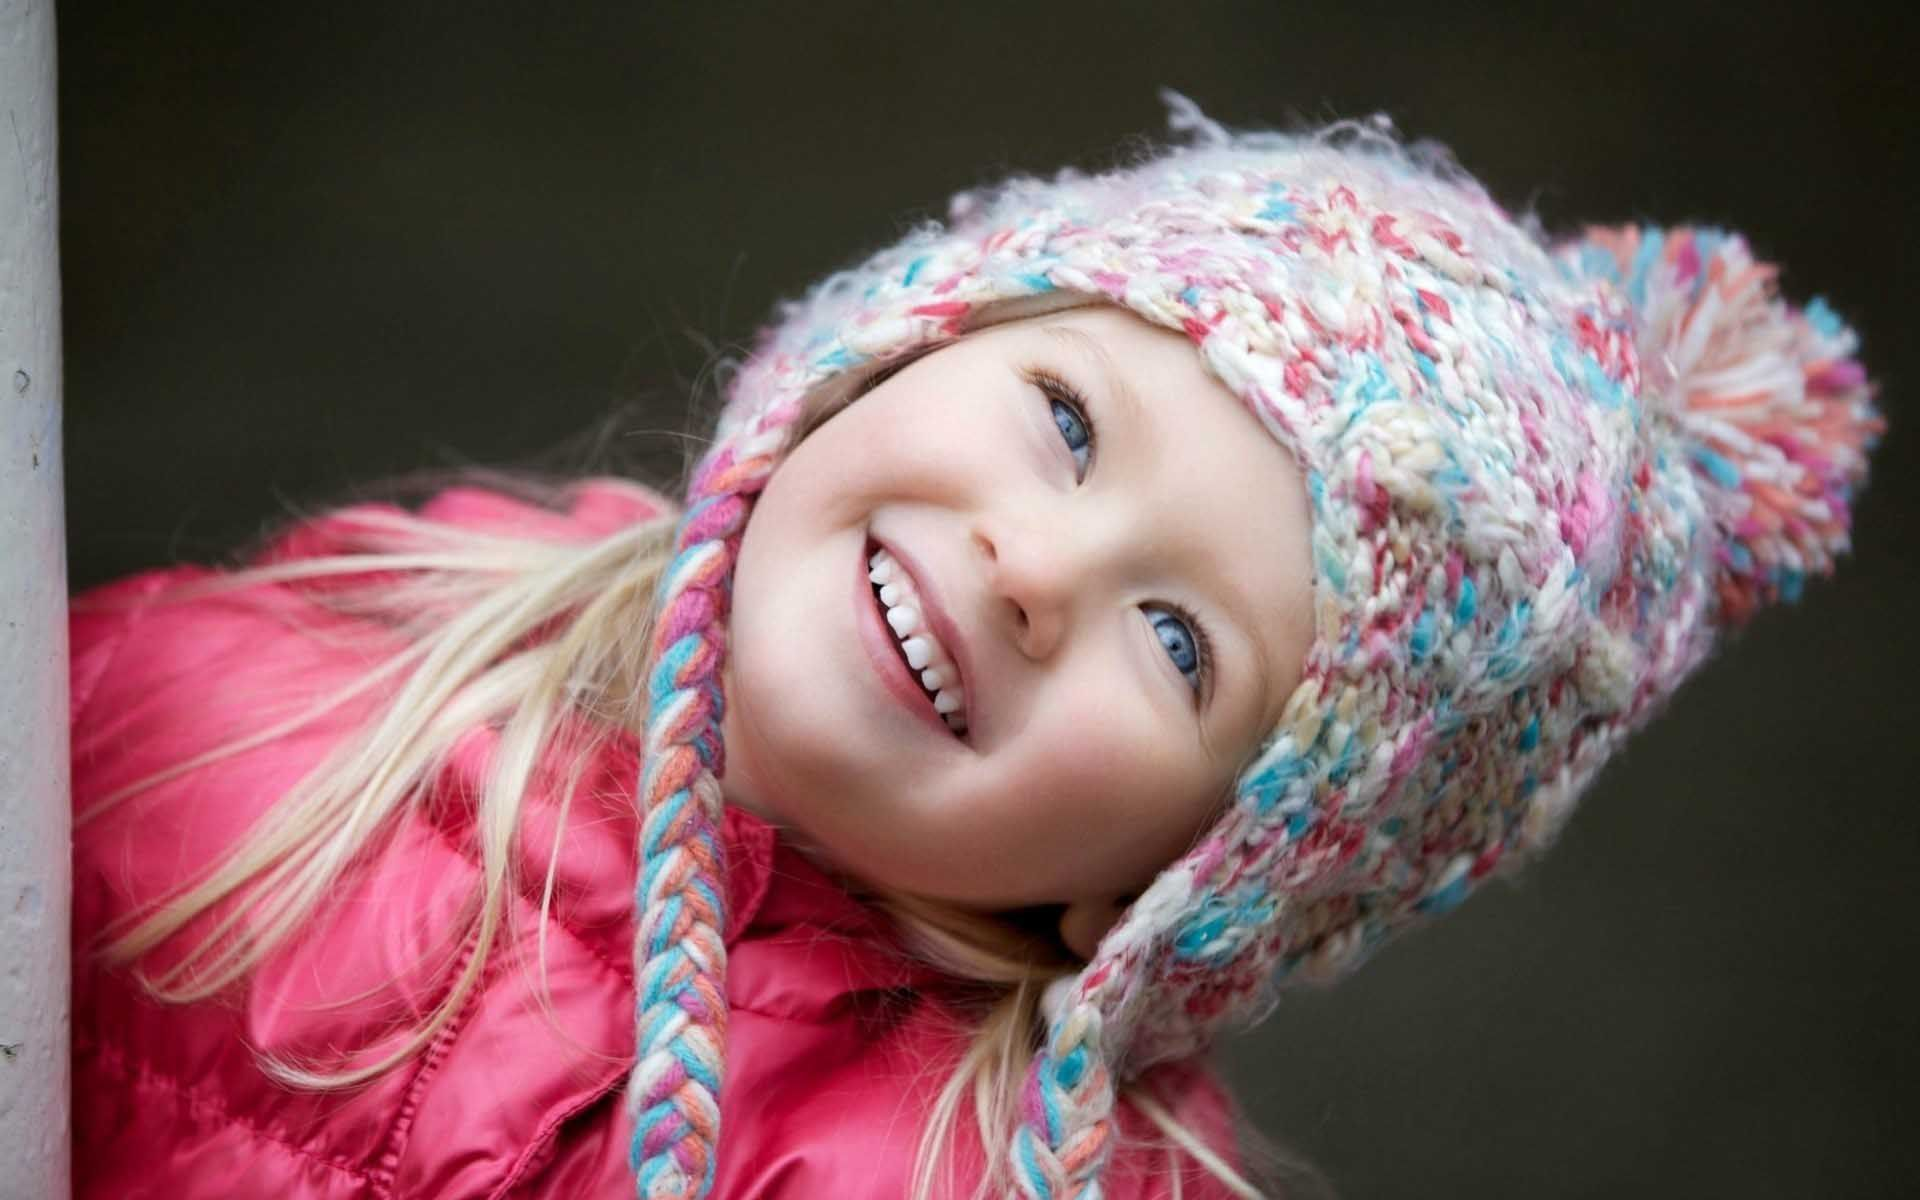 Mood Children Girl Smile Wallpaper | HD Cute Wallpapers for Mobile ...